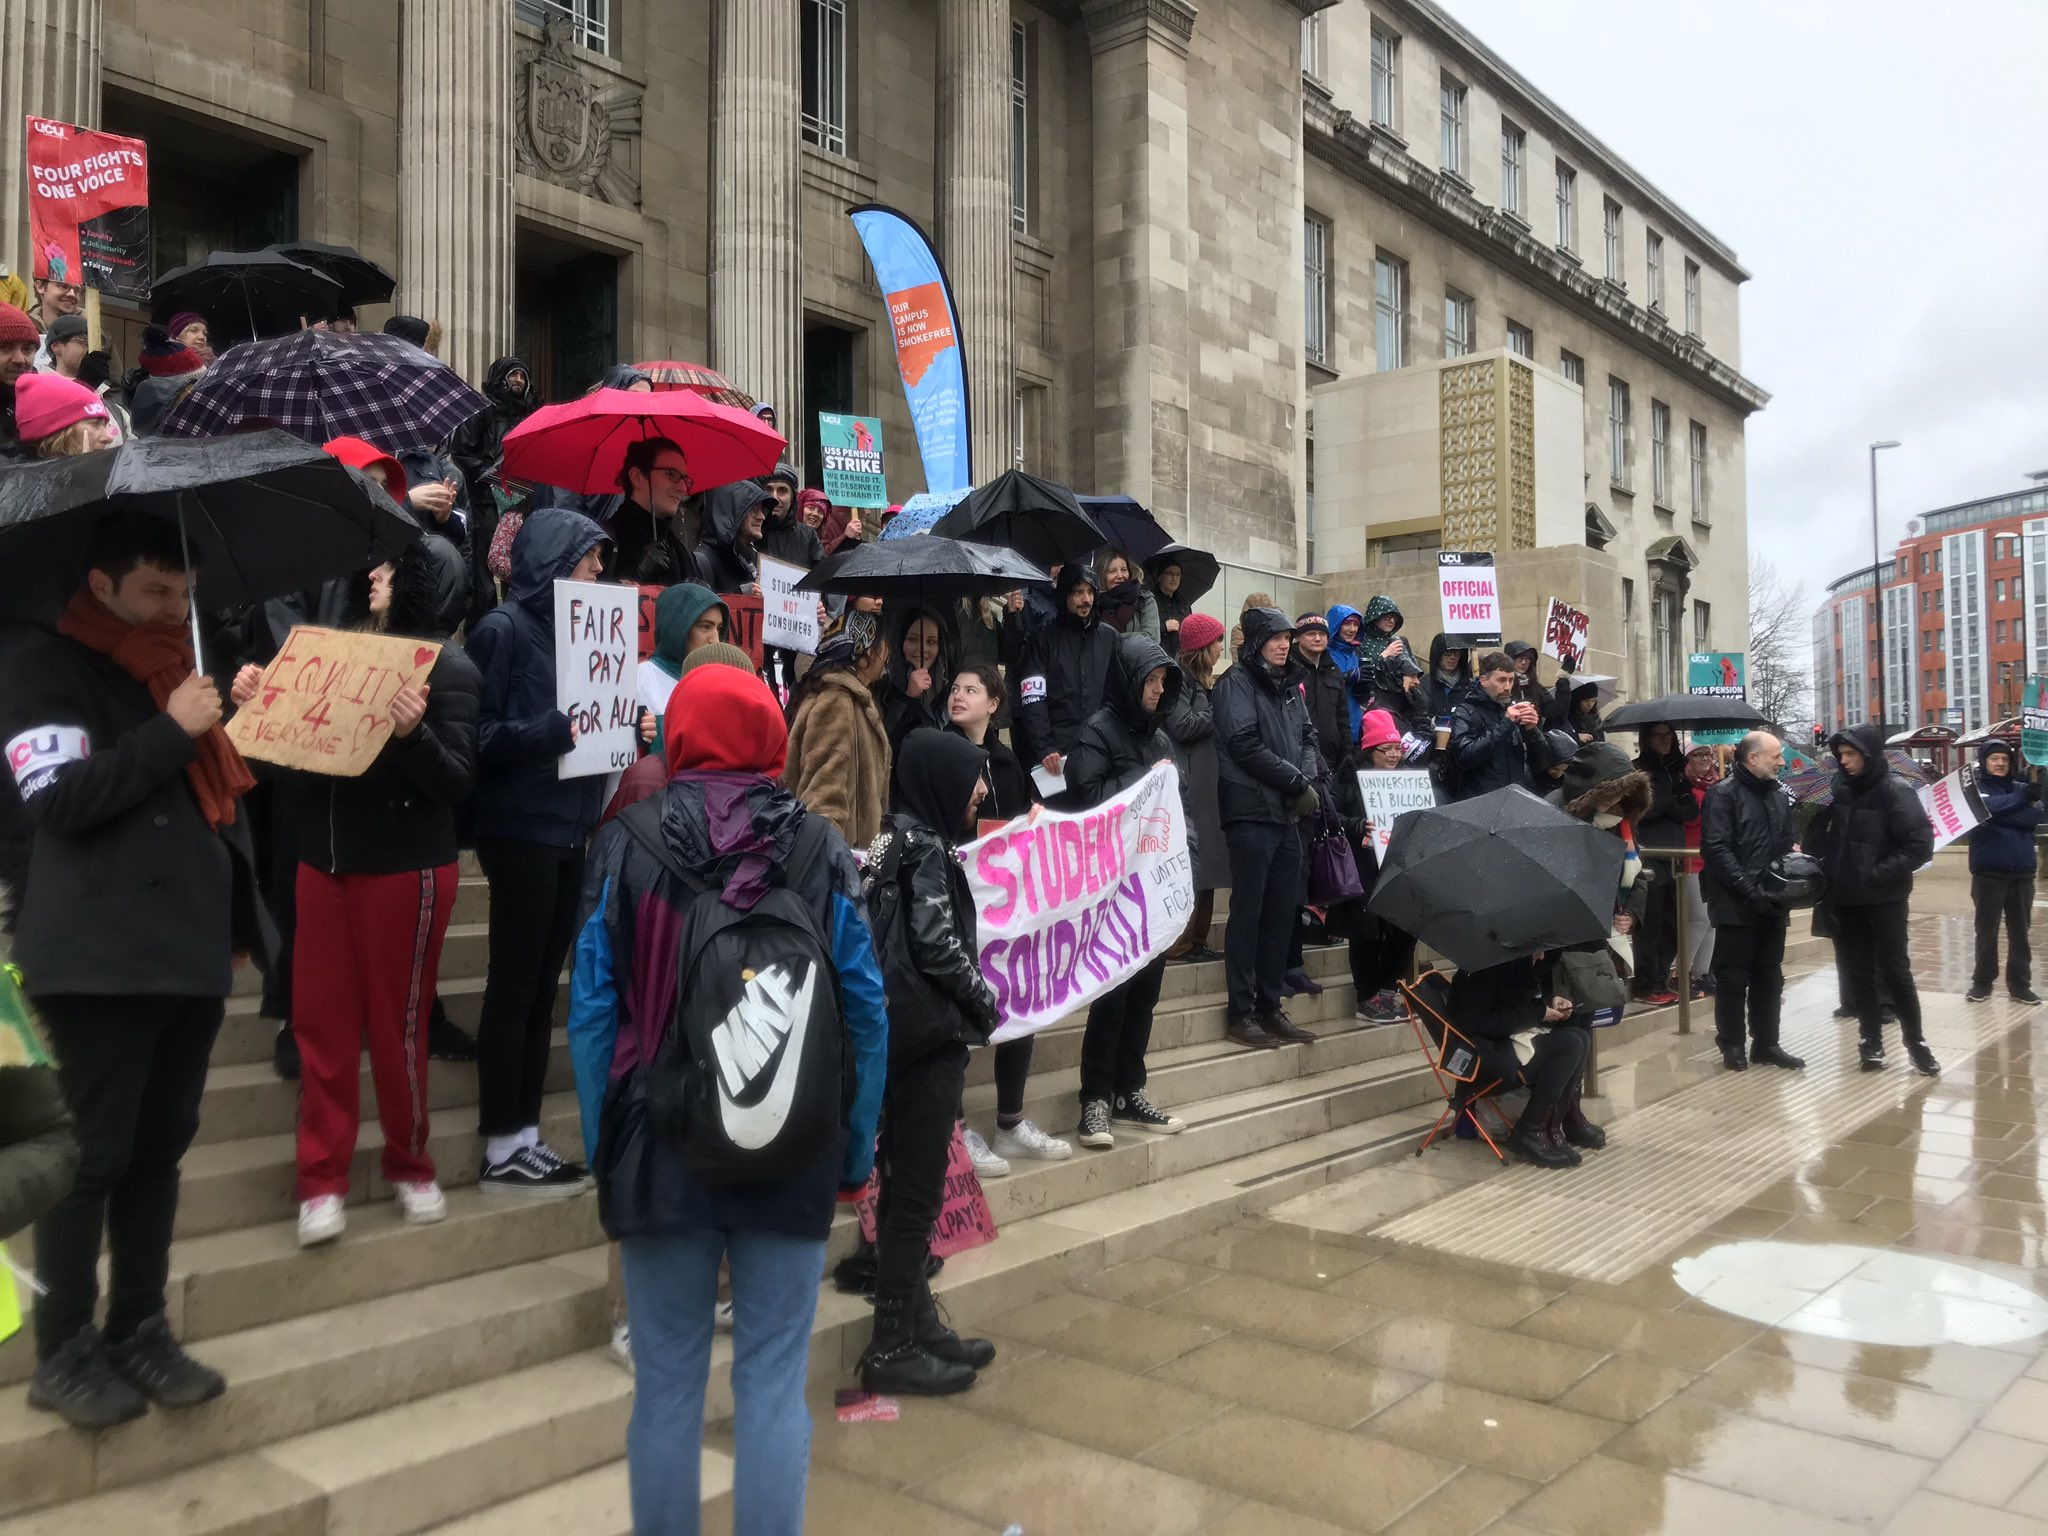 University and College Union pickets at the University of Leeds, 20th February 2020